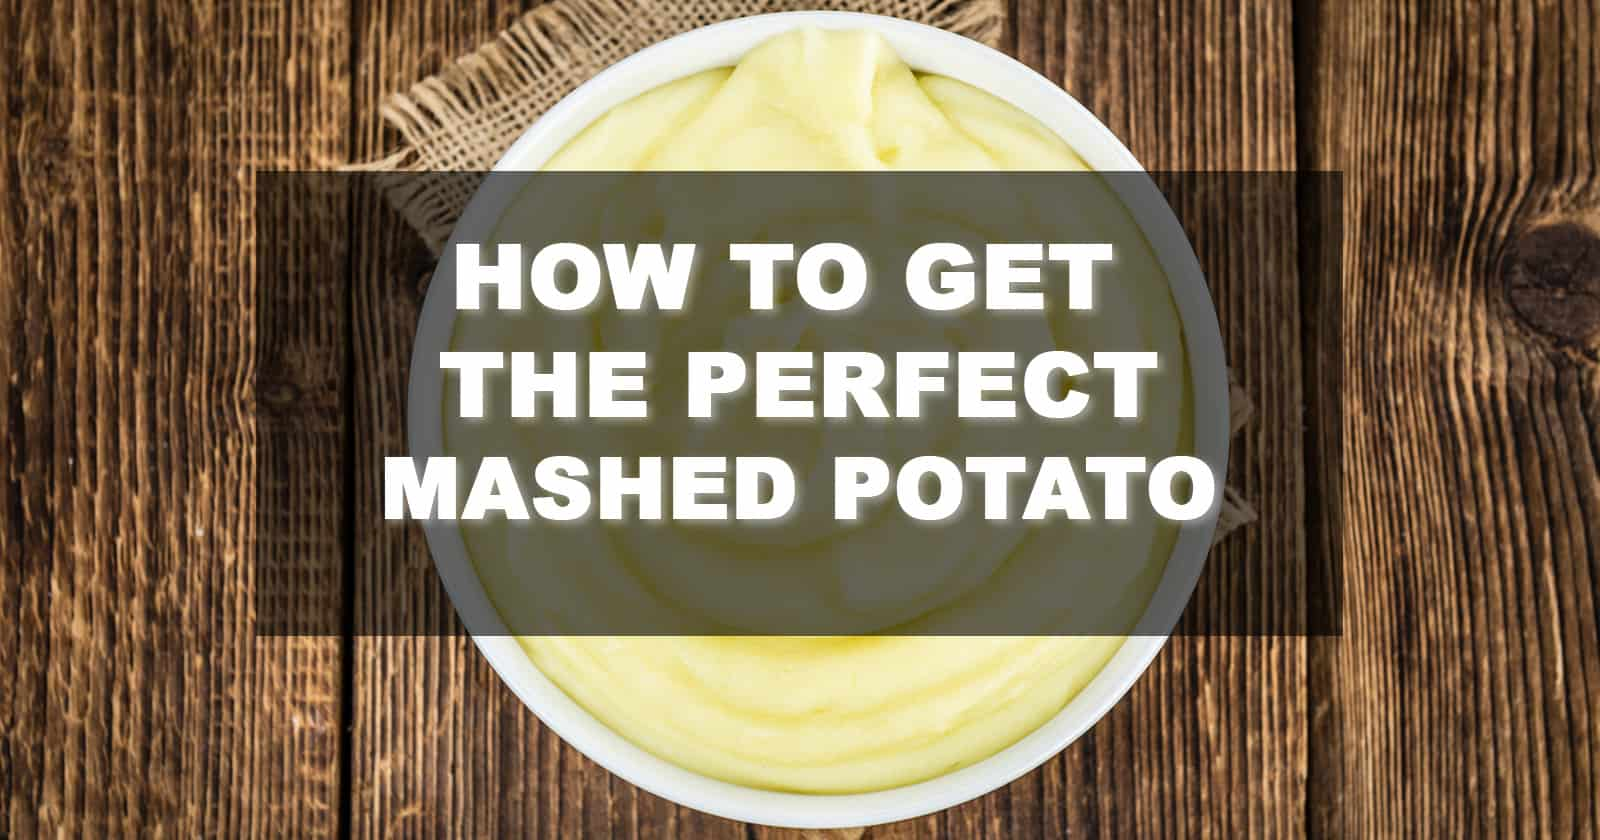 How To Get The Perfect Mashed Potato - FamilyNano